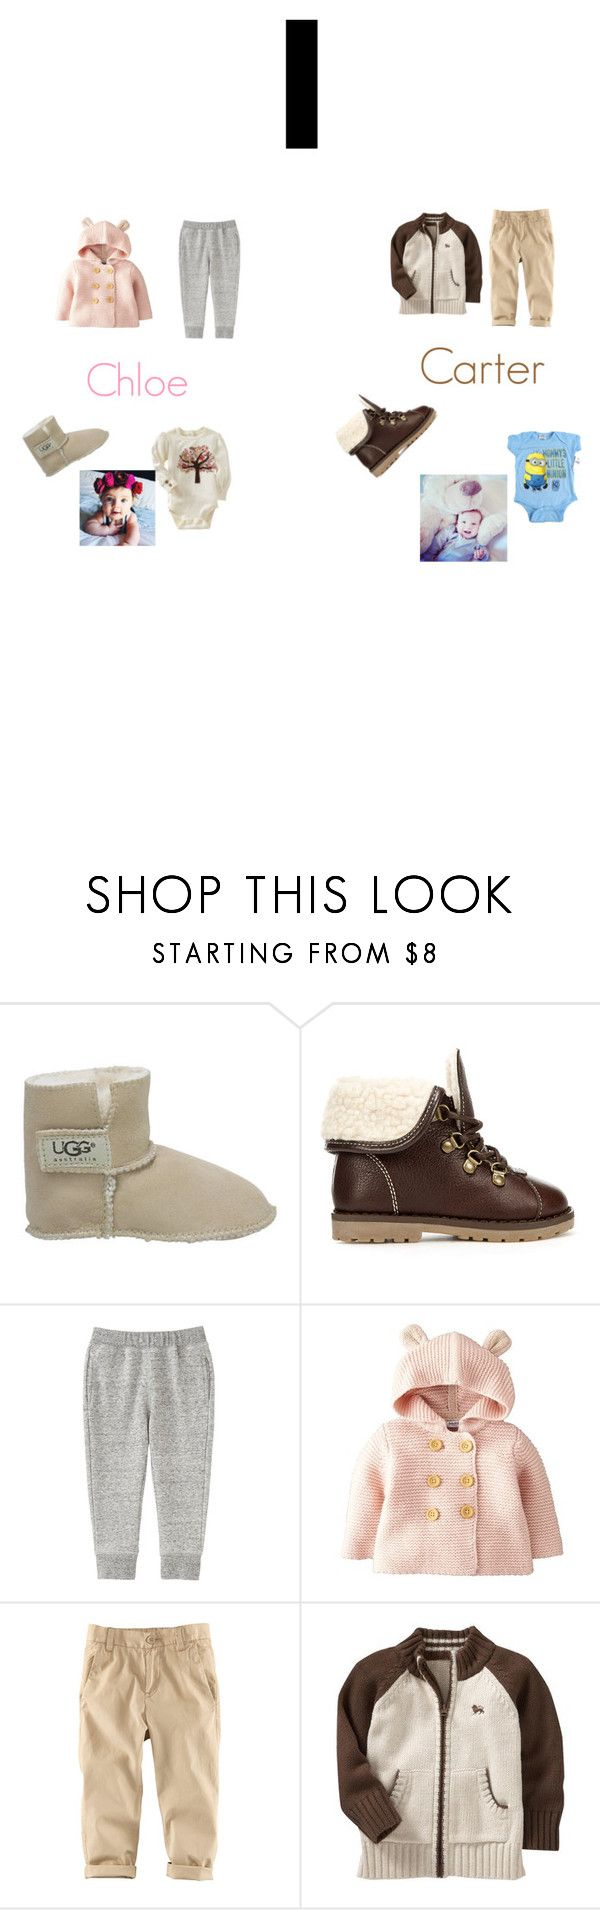 """Baby"" by hailey-donna on Polyvore featuring UGG Australia, Gap, Zara, Uniqlo, Mini Boden, H&M and Old Navy"